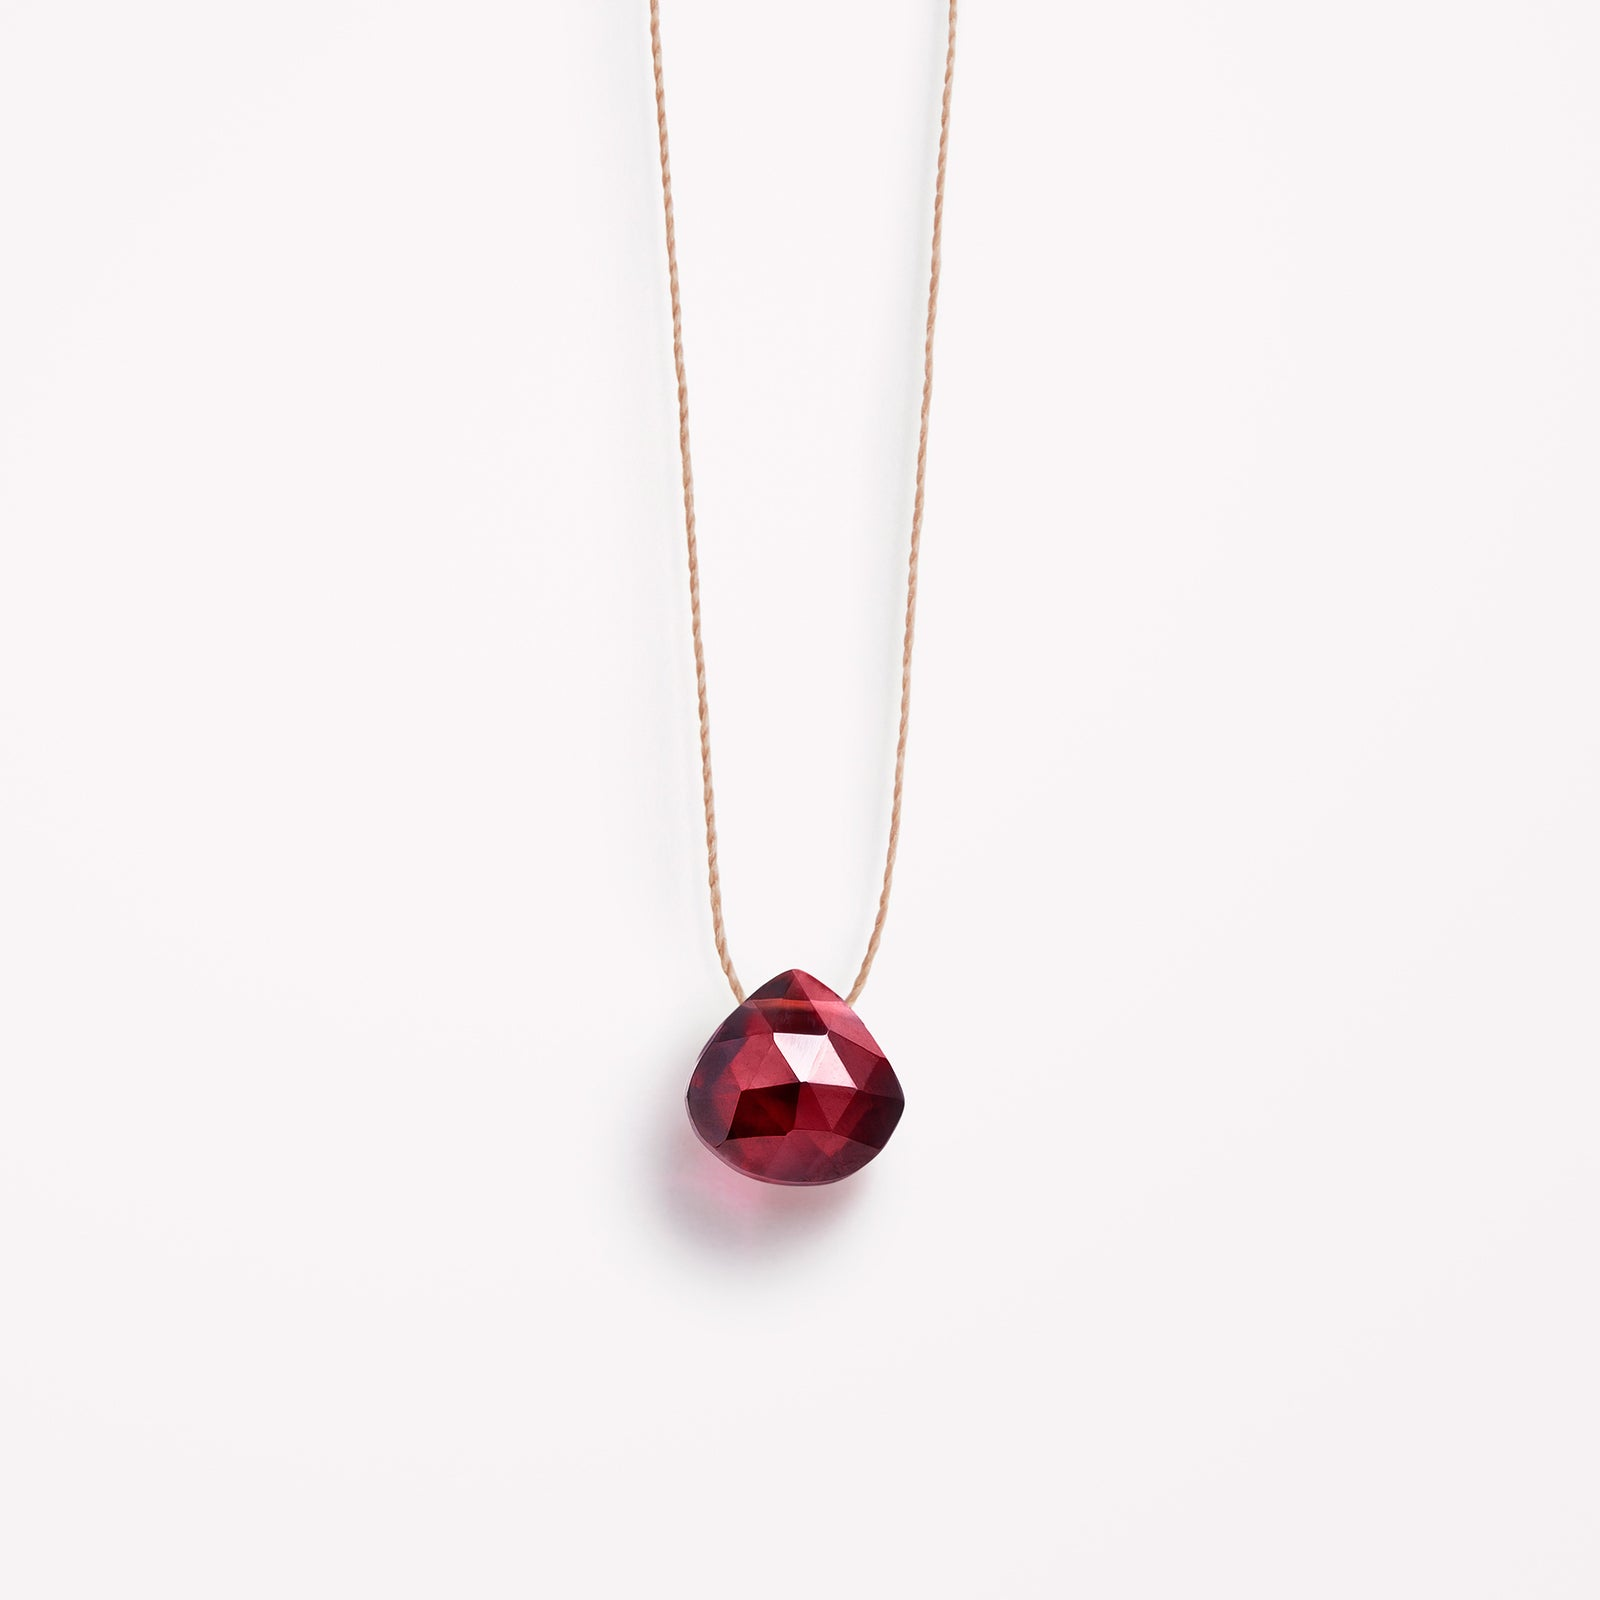 Wanderlust Life Ethically Handmade jewellery made in the UK. Minimalist gold and fine cord jewellery. january birthstone, garnet fine cord necklace